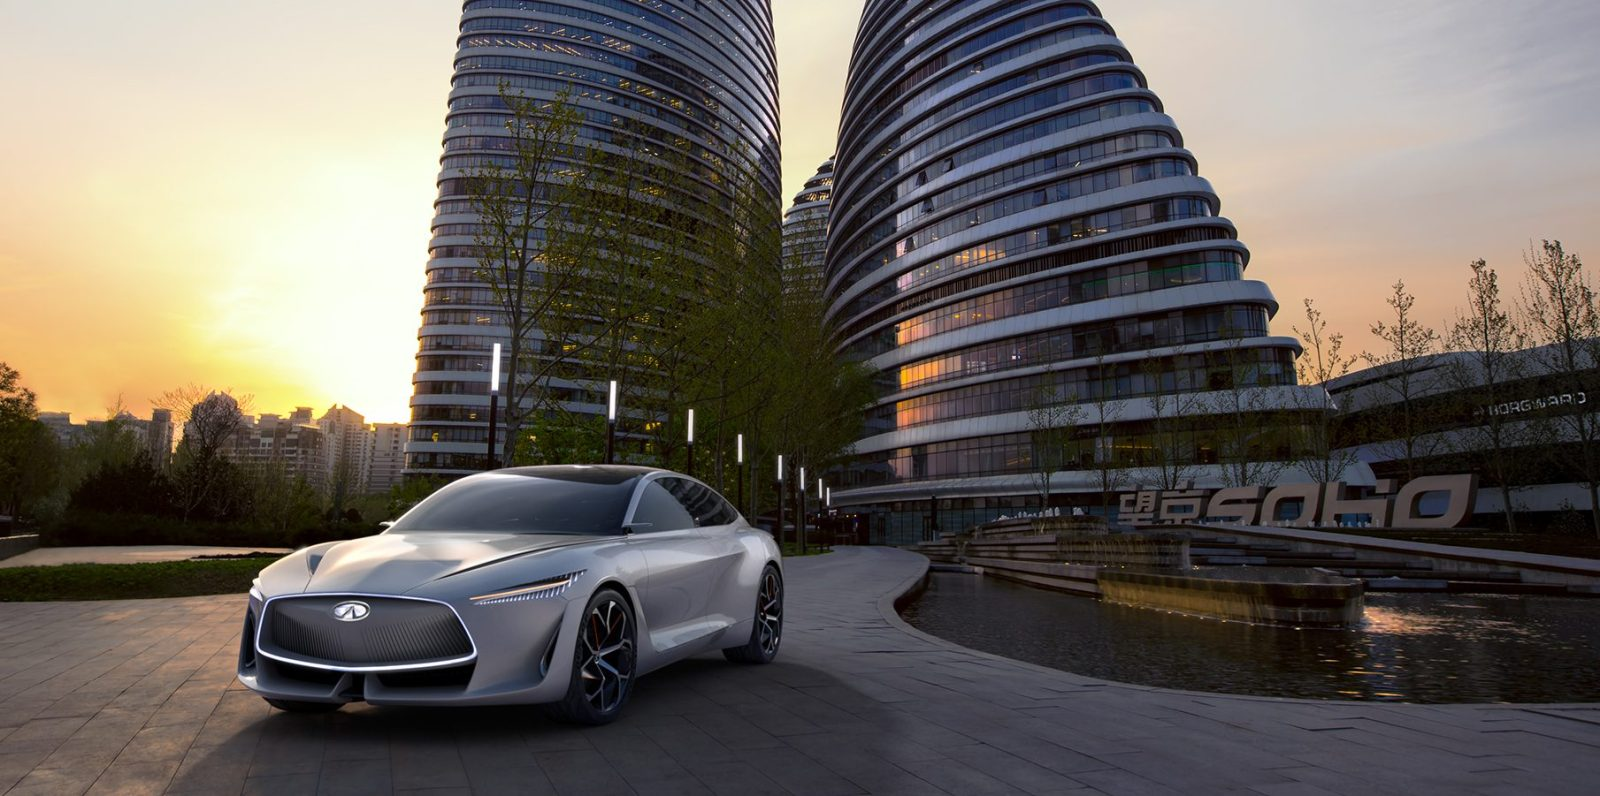 Infiniti Confirms New Electric Vehicle Platform Based On The Q